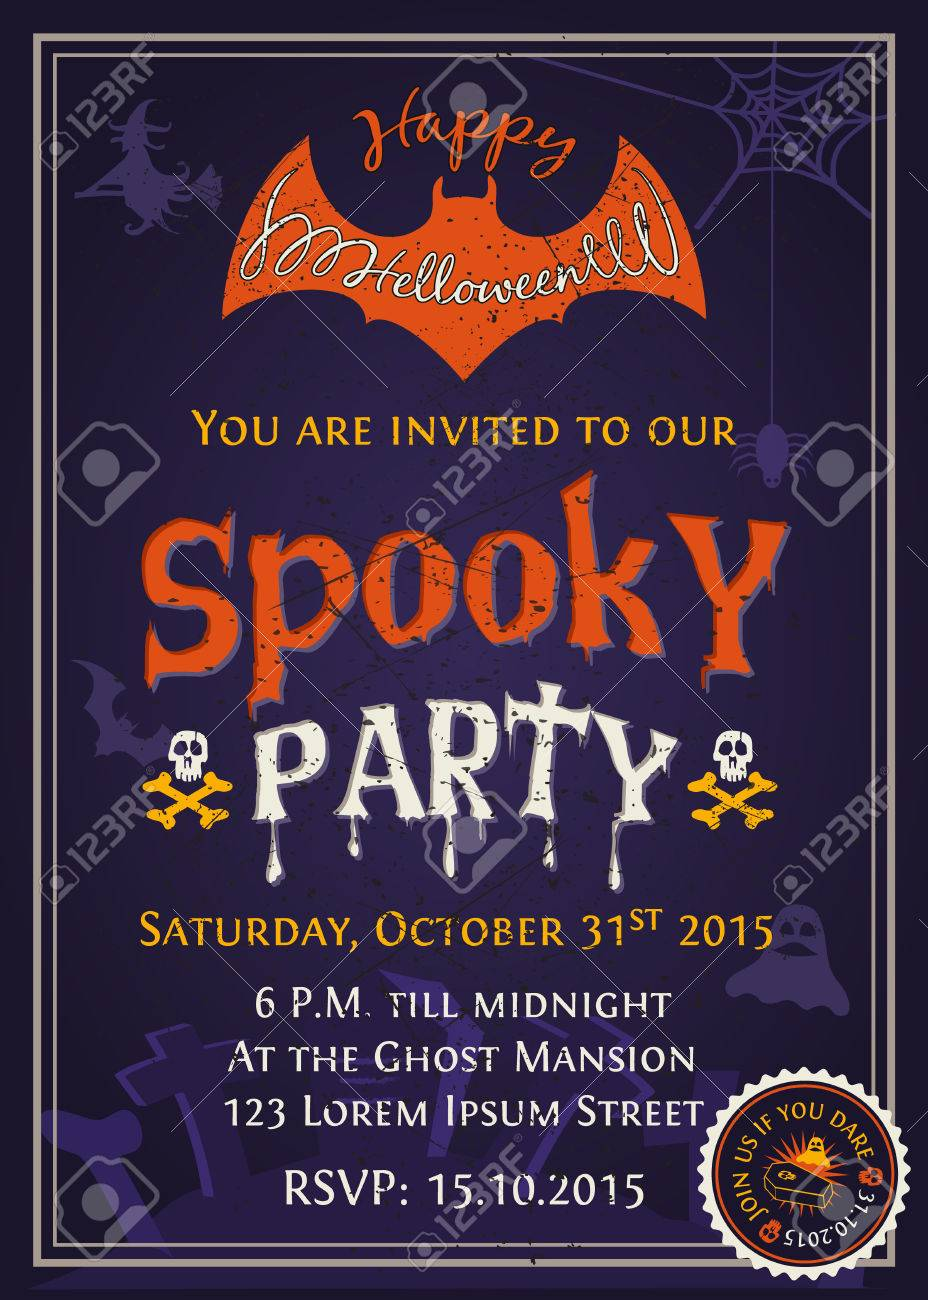 Spooky Halloween Party Invitation Card Design With Scary Typography ...